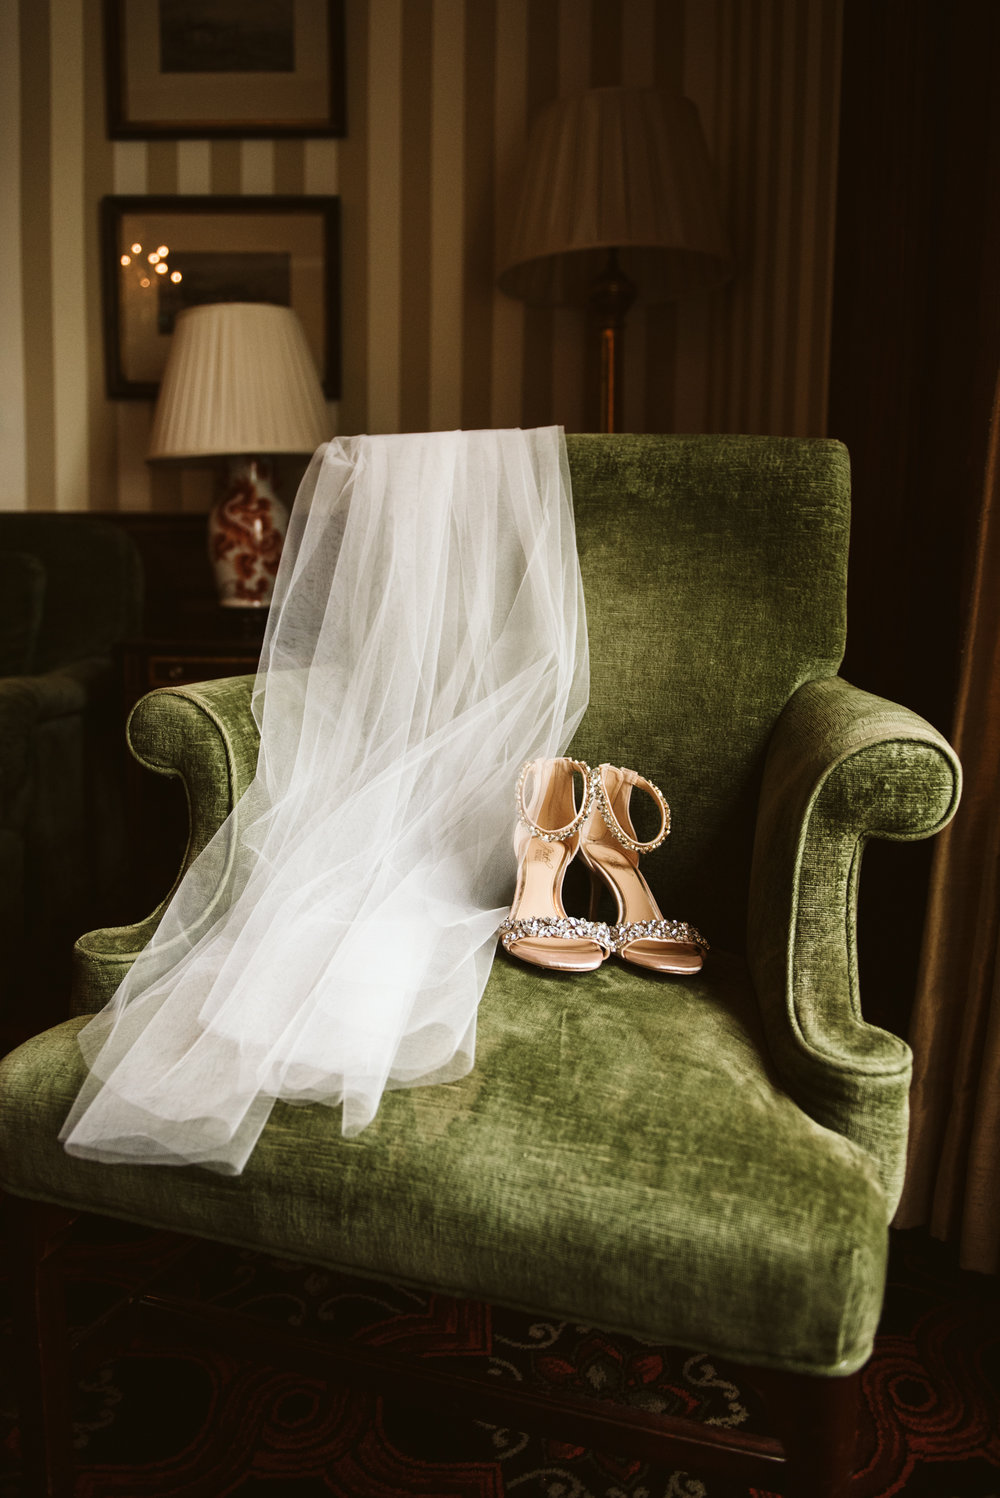 details shot of veil and shoes on green velvet chair